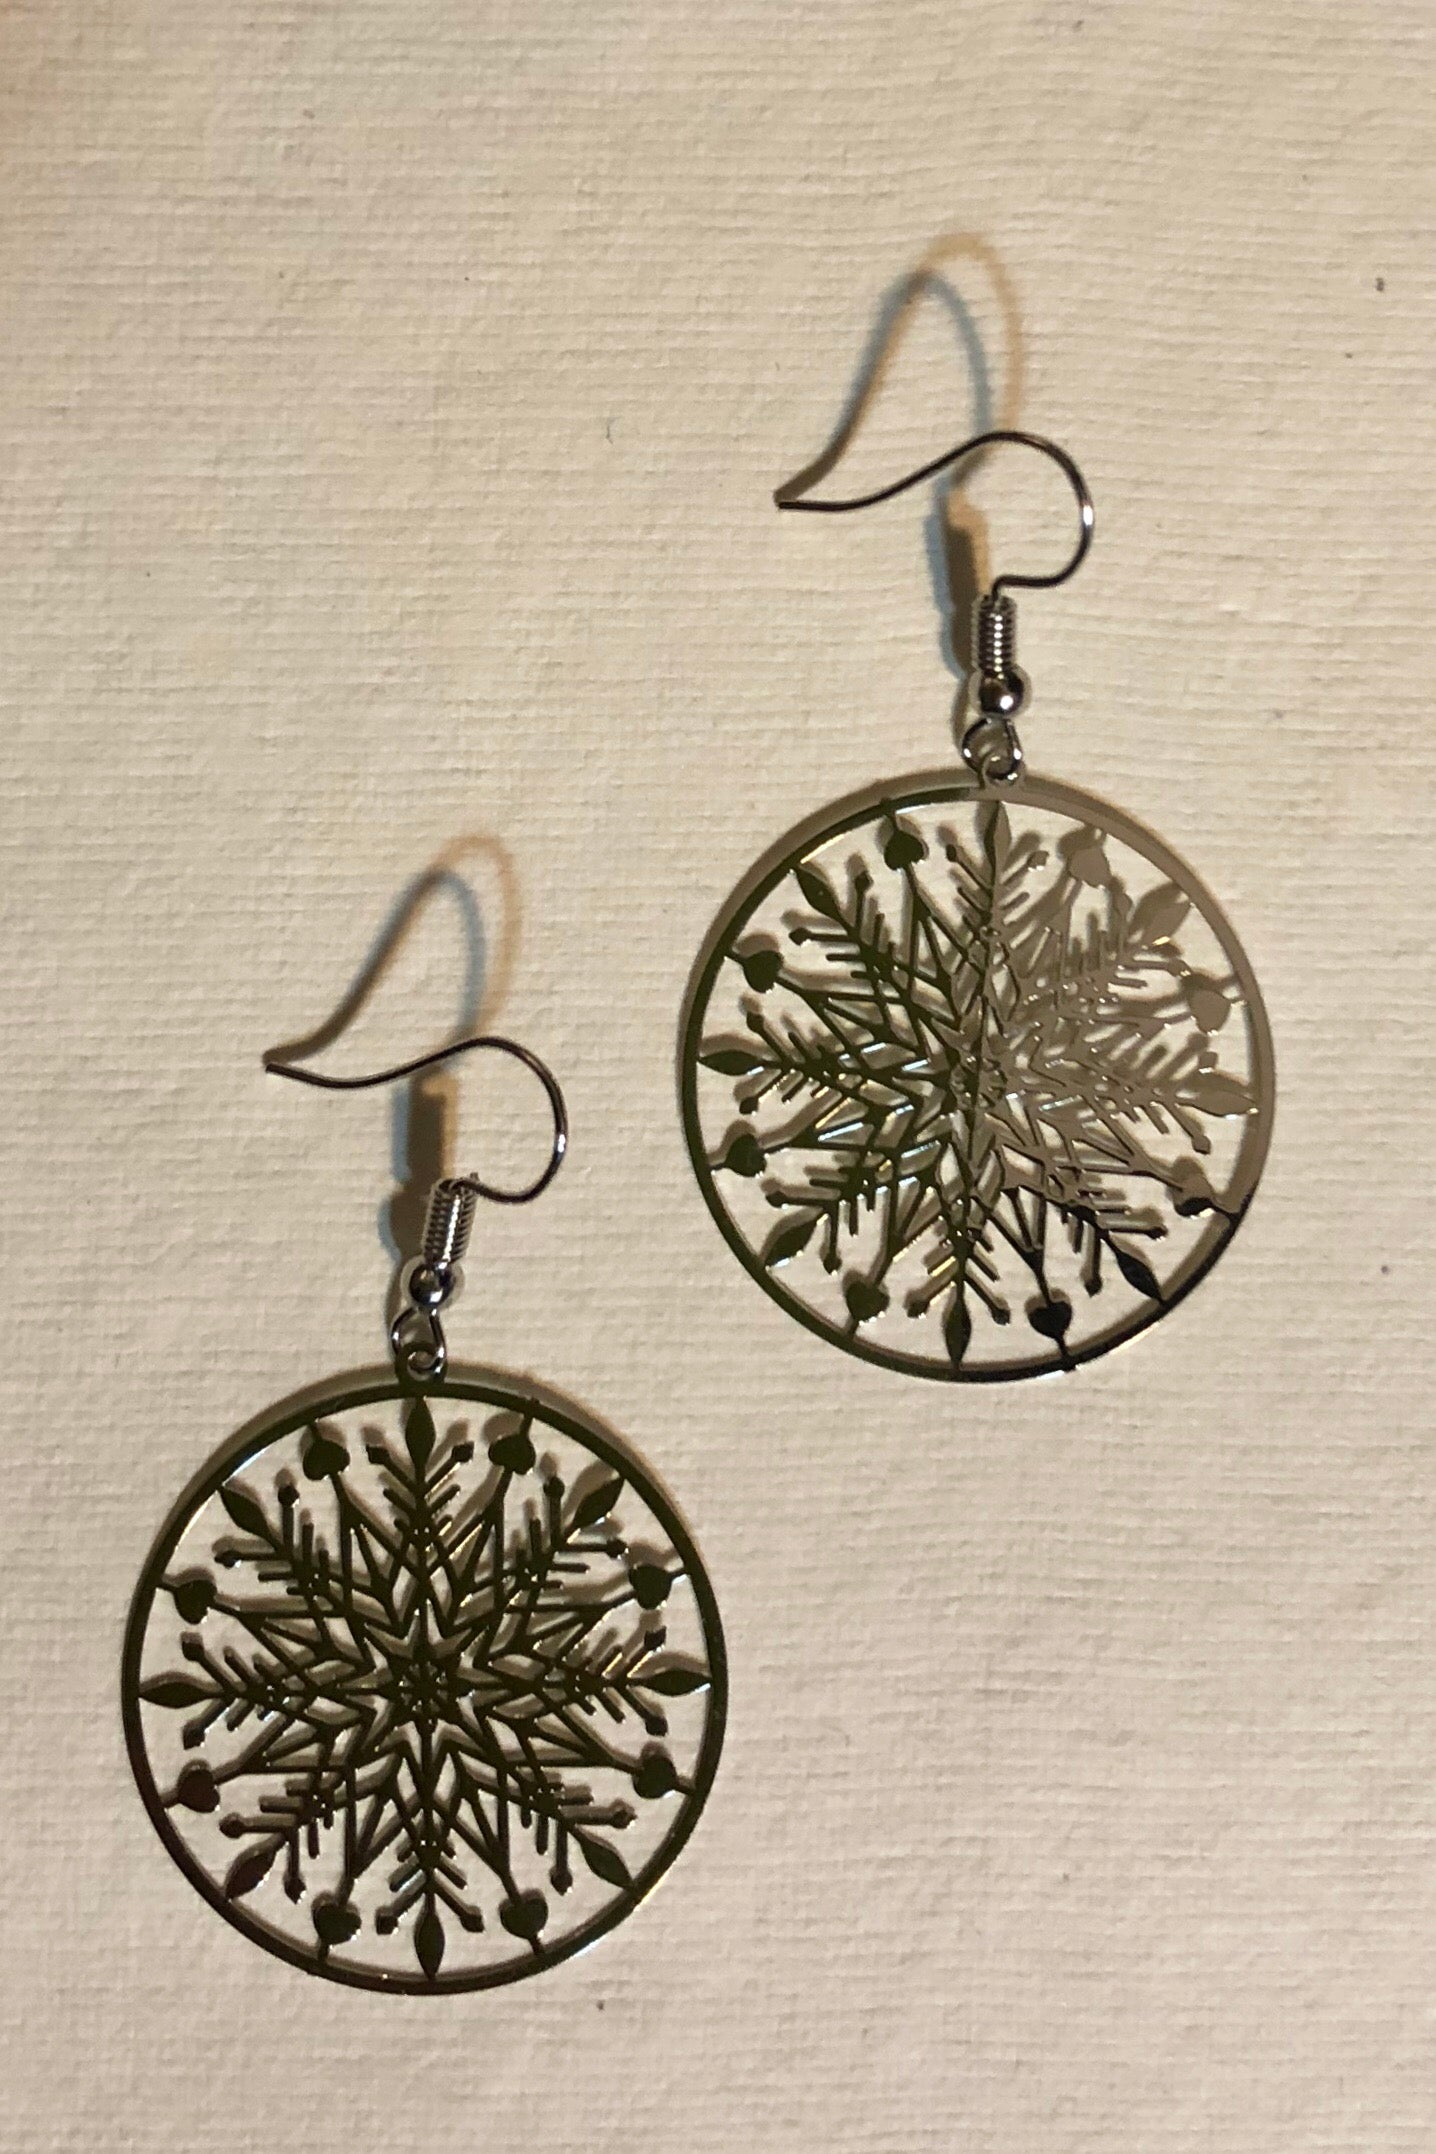 Earrings Flutter, Single Snowflake earring, Silver tone, lightweight flutter earrings, snowflake jewellery